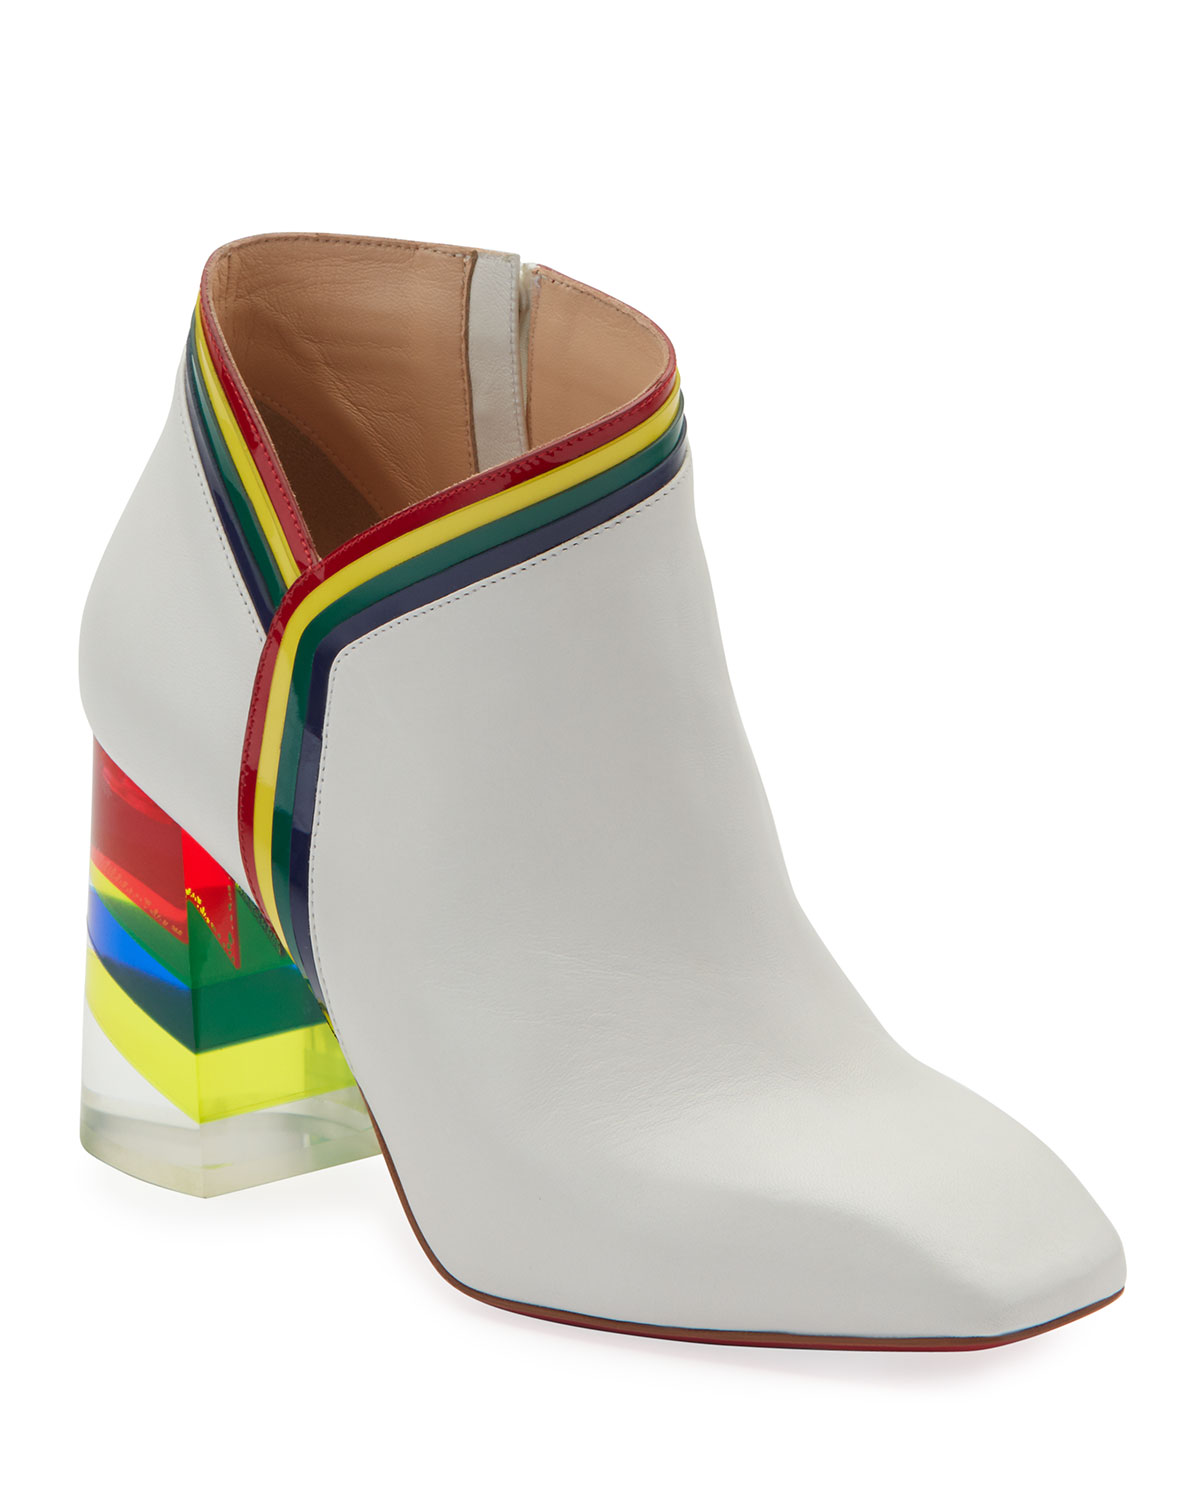 dd7a95290a7f Christian louboutin raniboot rainbow plexi heel red sole booties in white  jpg 1200x1500 Red christian louboutin